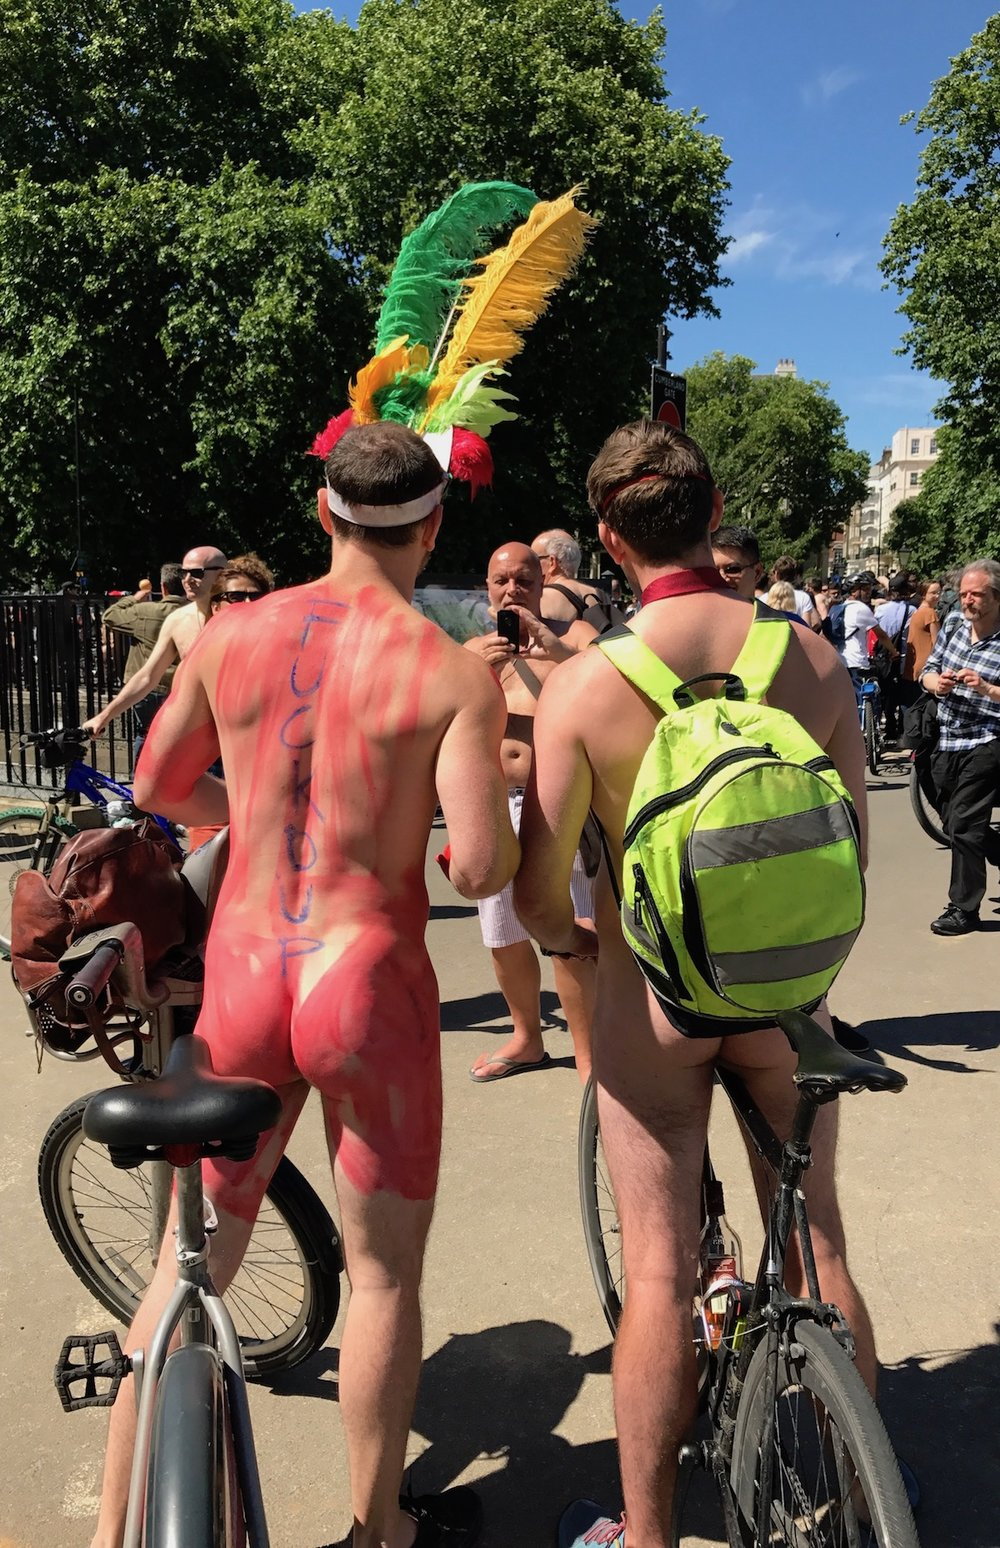 Guy with body paint and feathers. World's Naked Bike Ride London 2017